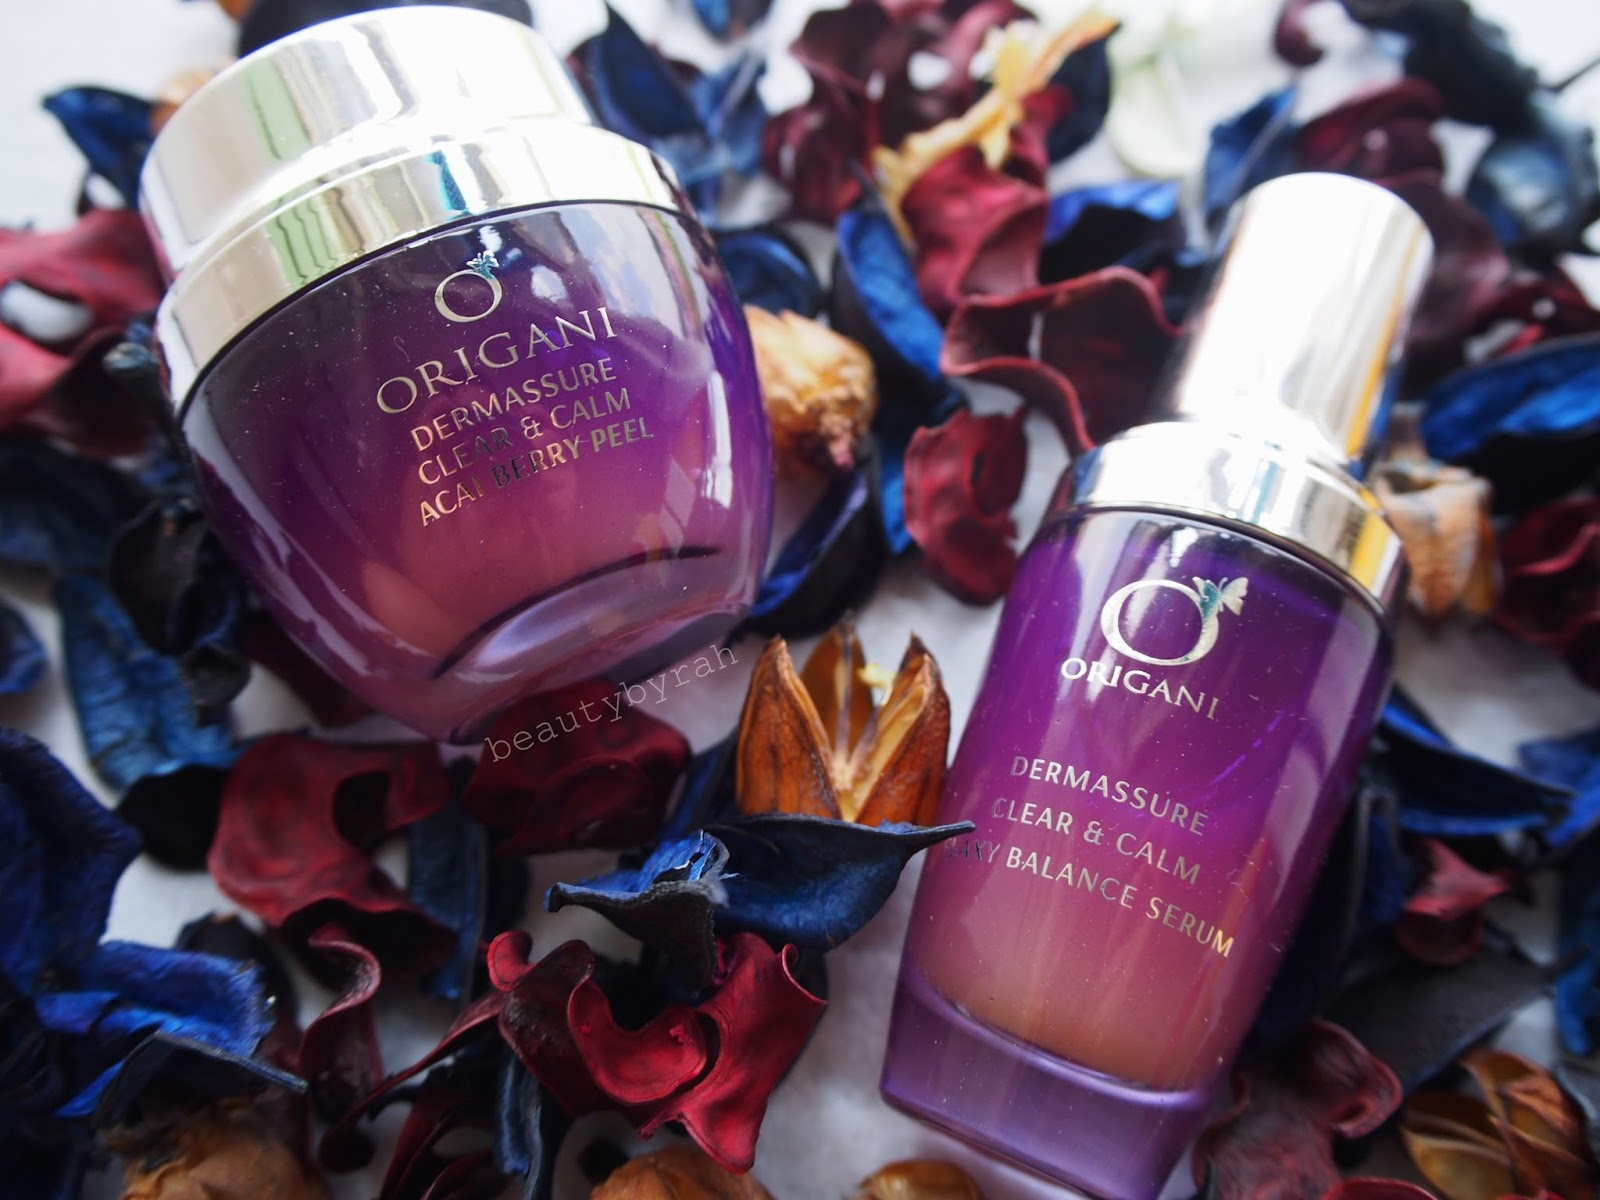 Origani Dermassure Clear & Calm Acai Berry Peel and Flaxy Balance Serum Review